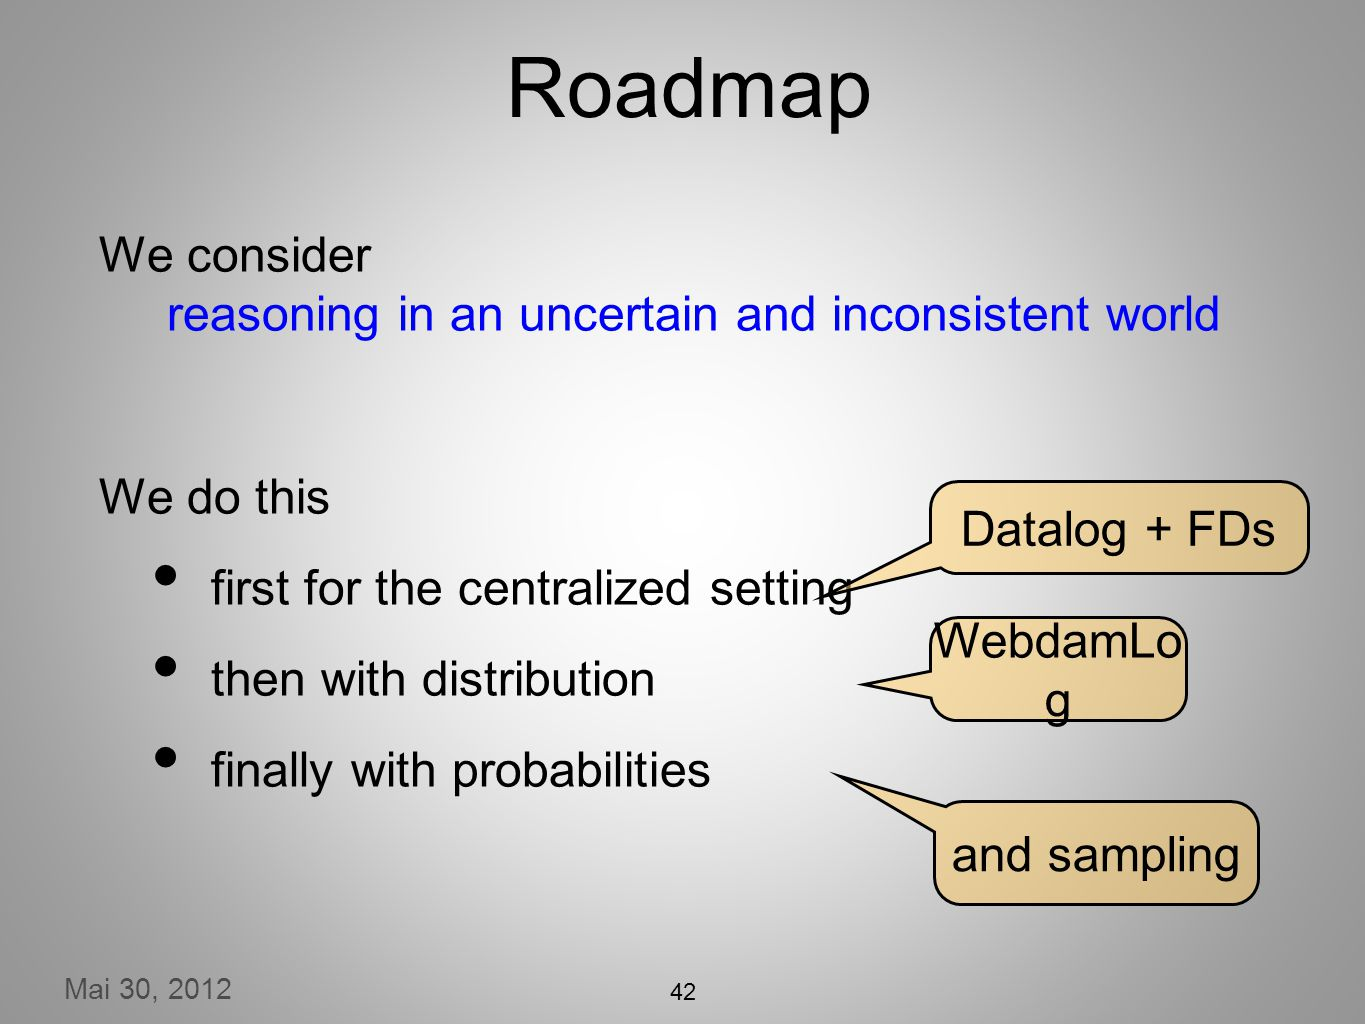 Mai 30, 2012 42 Roadmap We consider reasoning in an uncertain and inconsistent world We do this first for the centralized setting then with distribution finally with probabilities Datalog + FDs WebdamLo g and sampling